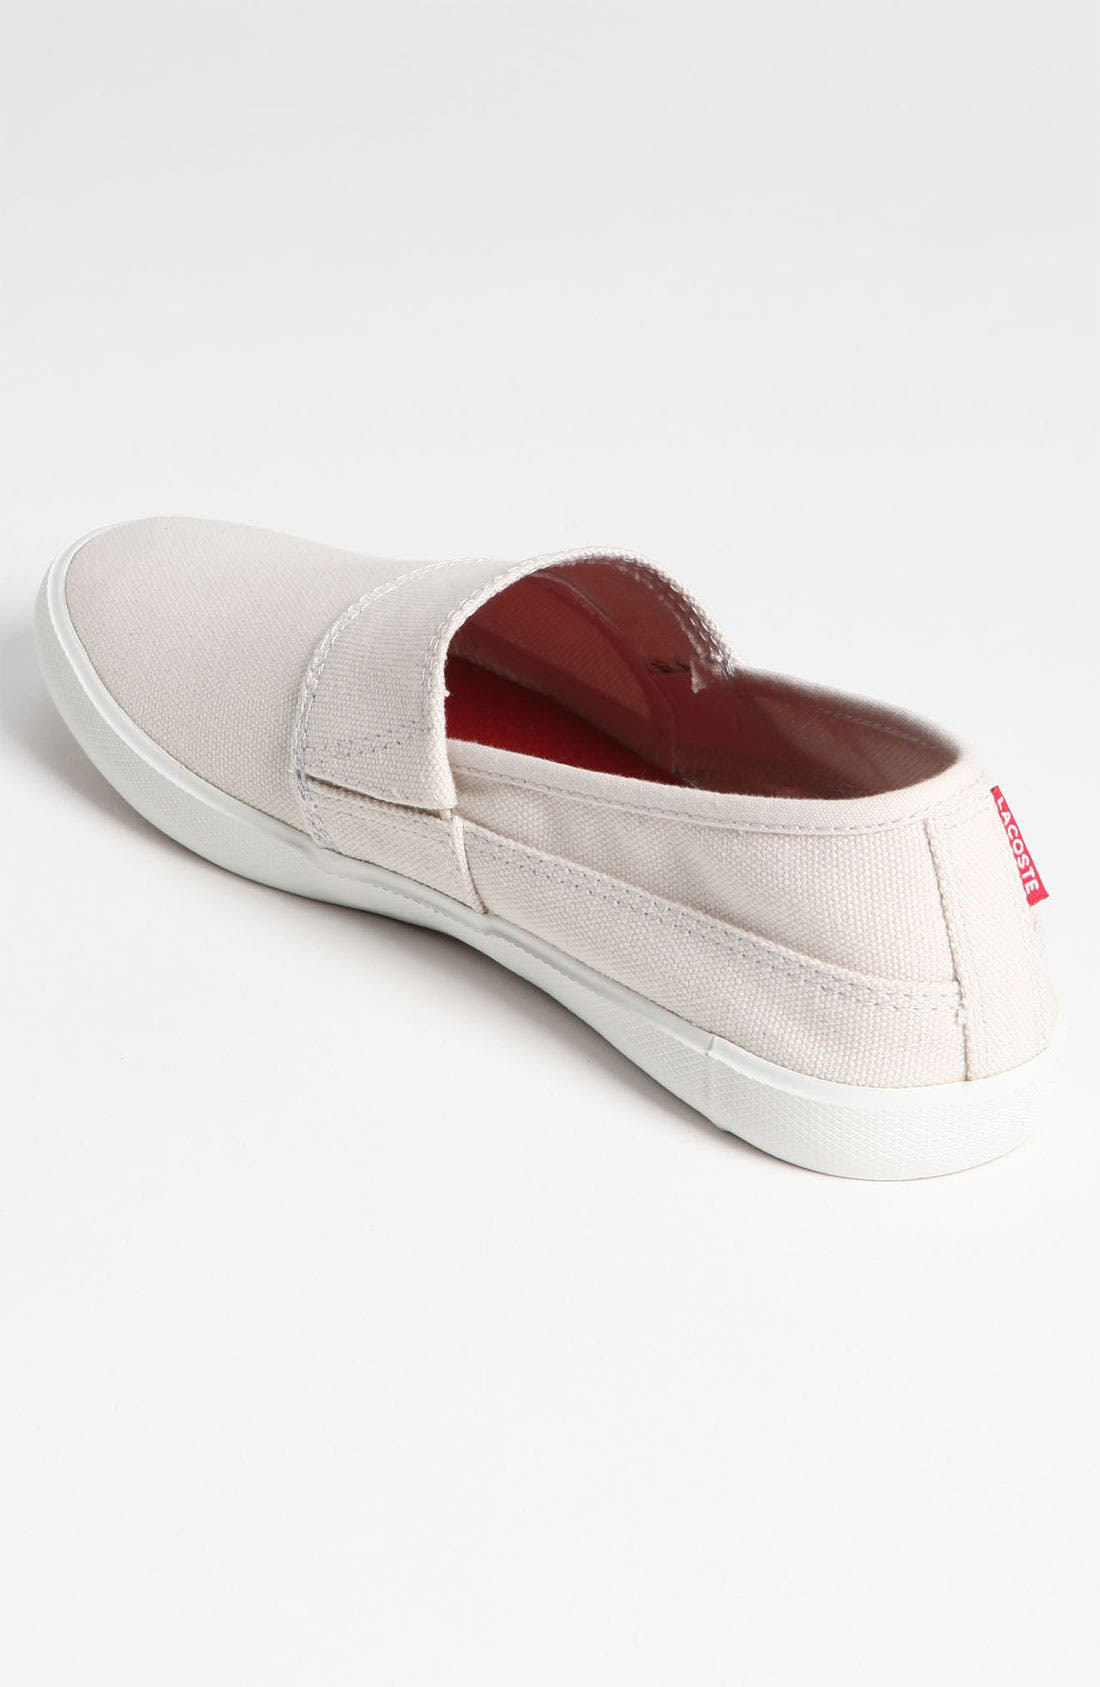 Alternate Image 2  - Lacoste 'Clemente CI' Slip-On Sneaker